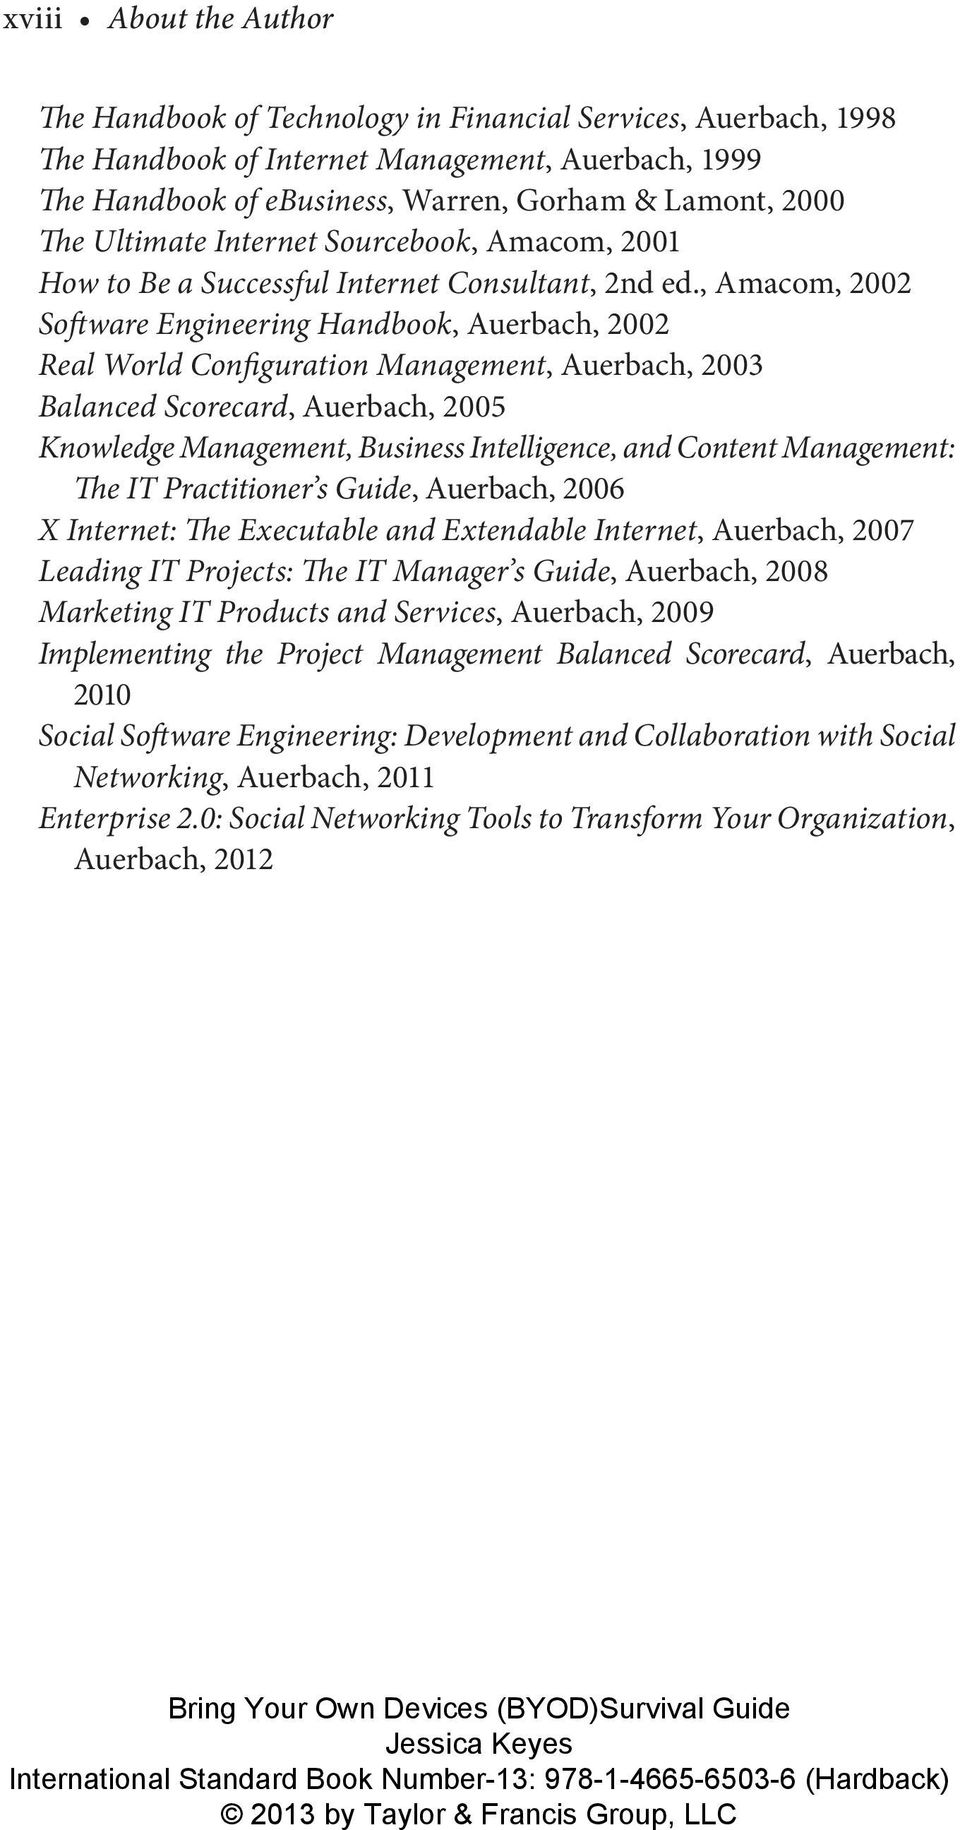 , Amacom, 2002 Software Engineering Handbook, Auerbach, 2002 Real World Configuration Management, Auerbach, 2003 Balanced Scorecard, Auerbach, 2005 Knowledge Management, Business Intelligence, and